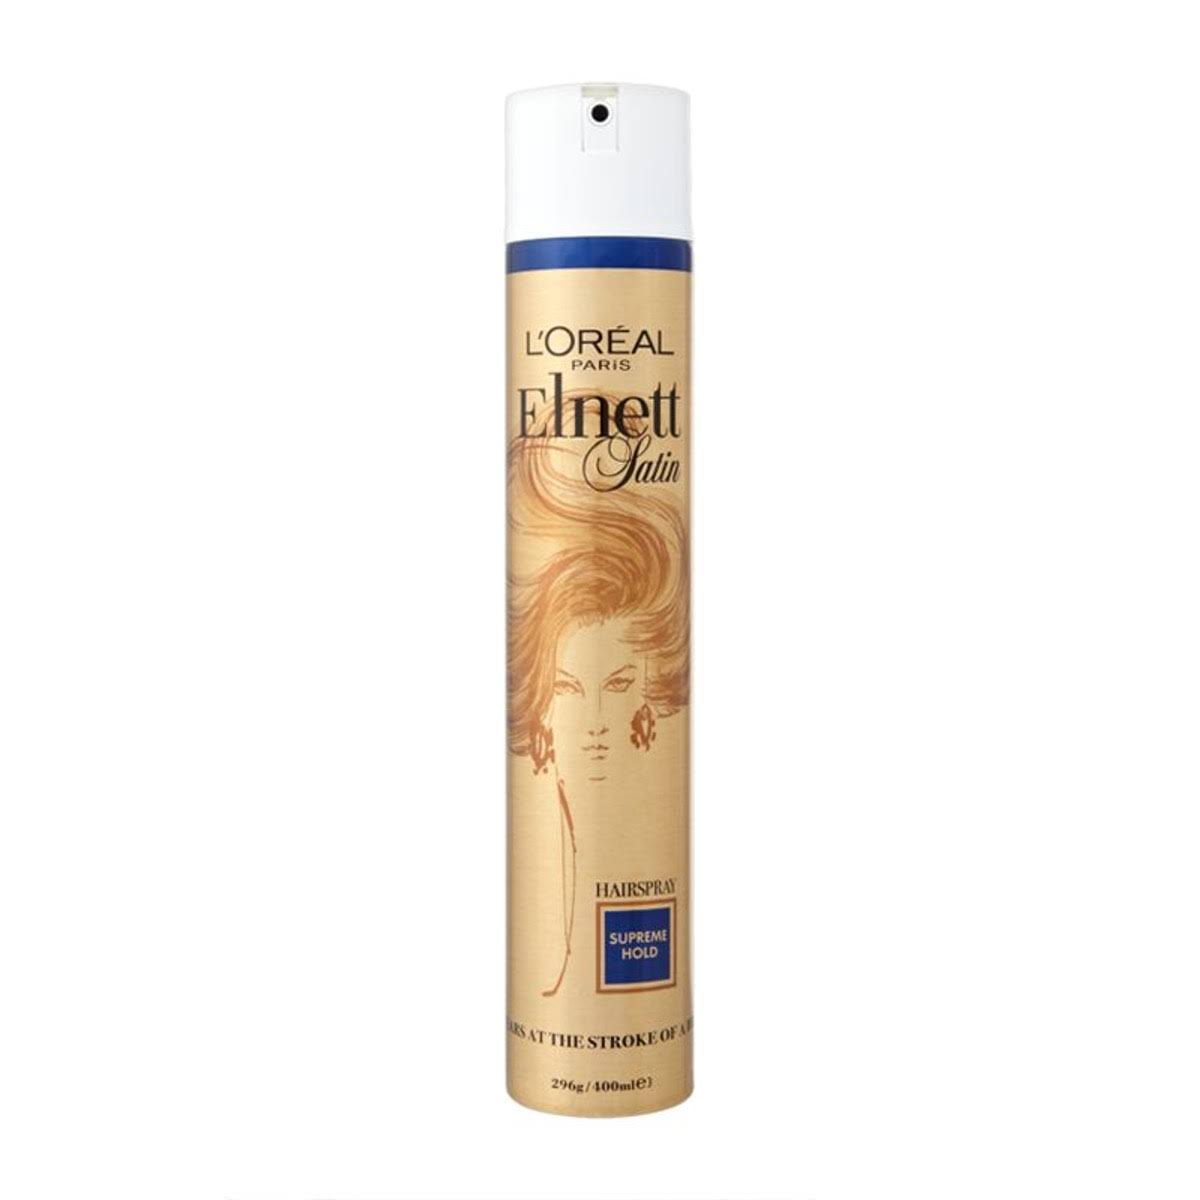 L'Oreal Elnett Hair Spray - Supreme Hold, 400ml